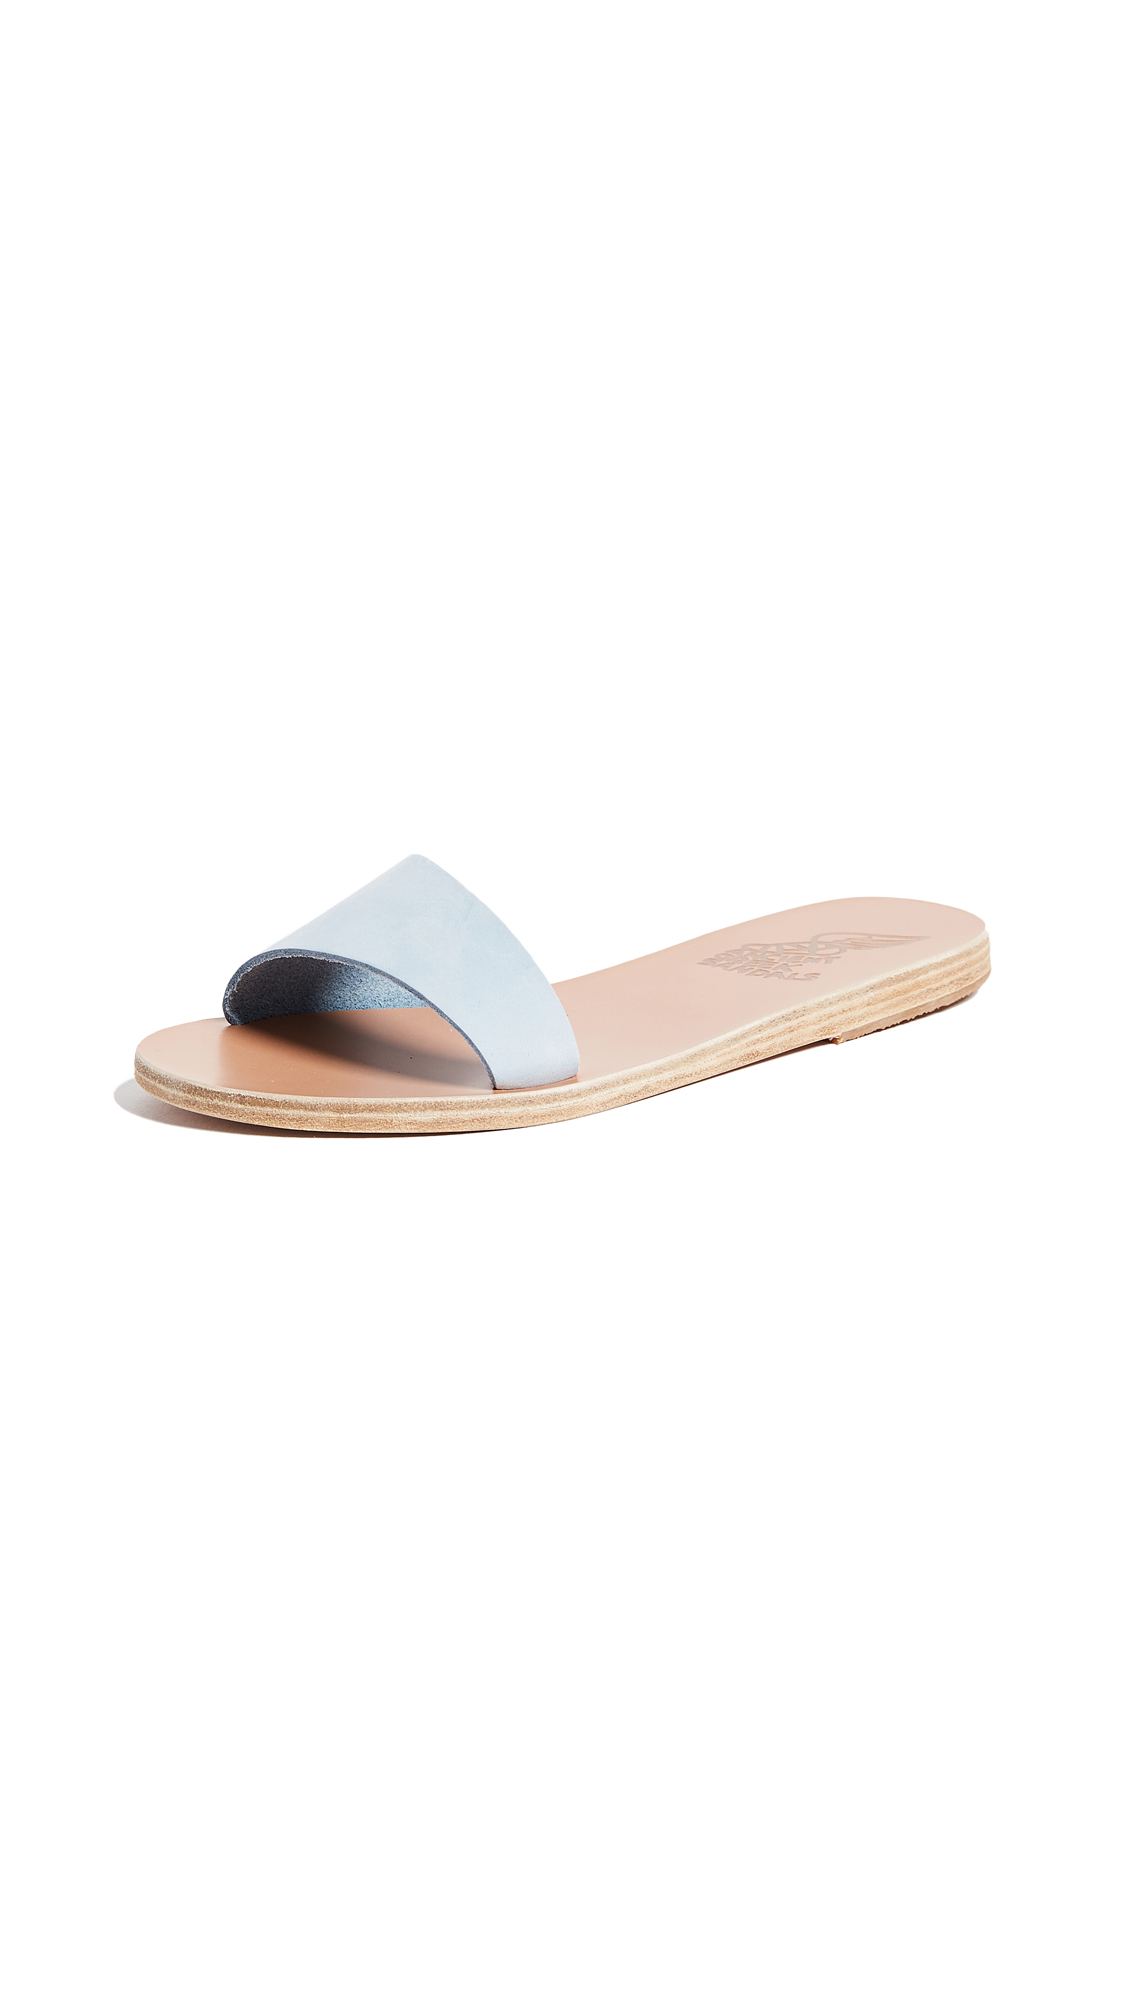 Ancient Greek Sandals Arsinoi Slide Sandals - Baby Blue